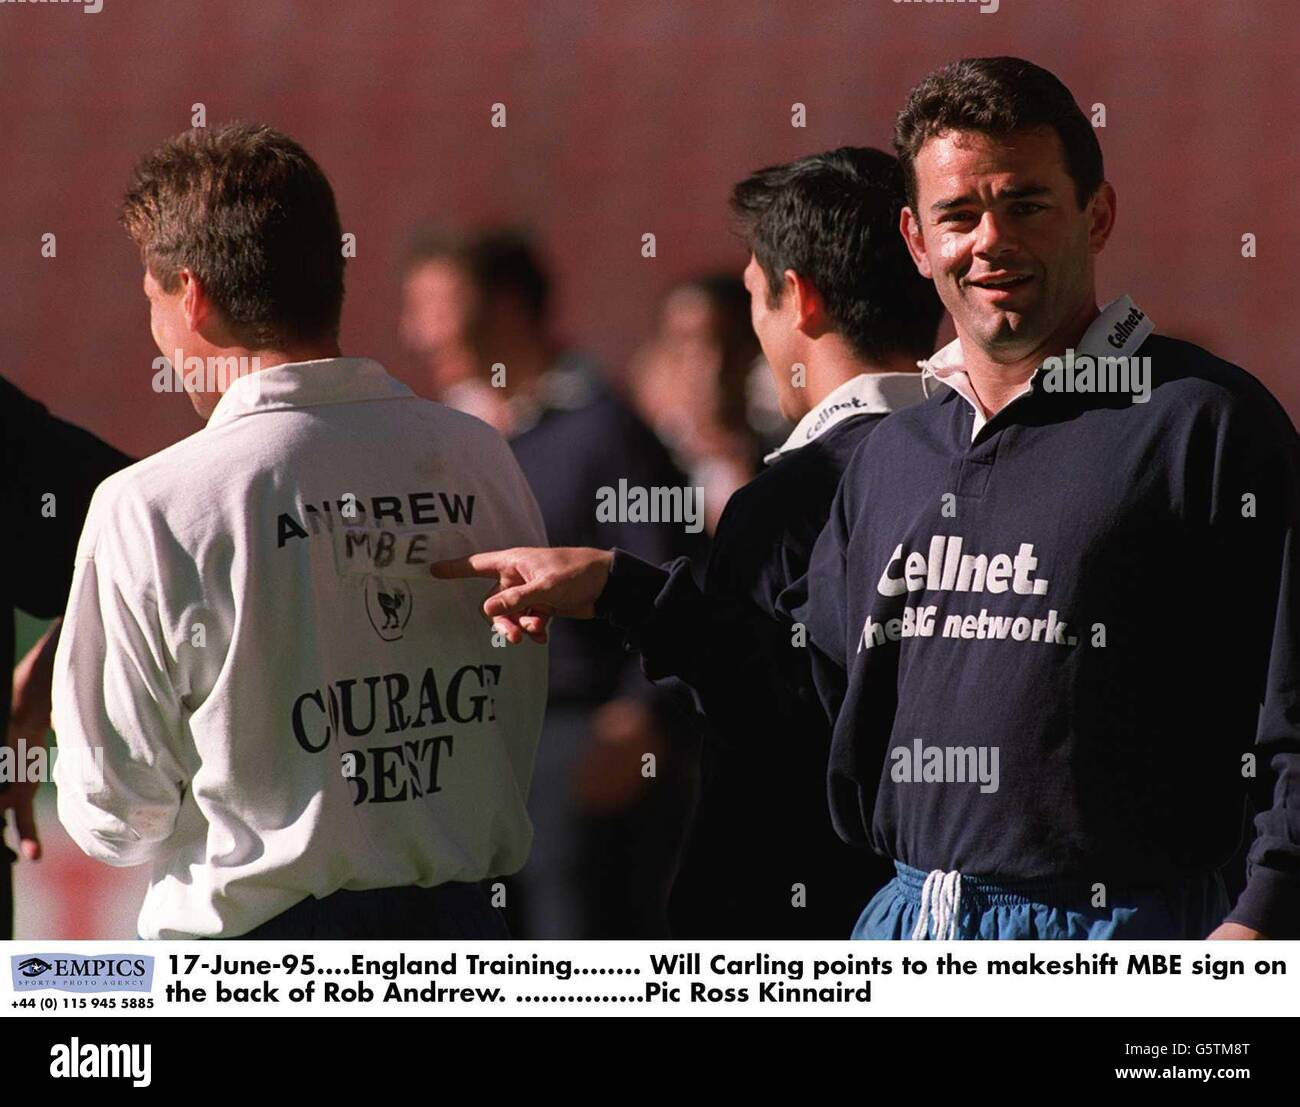 Rugby Union World Cup 1995 - England - Stock Image